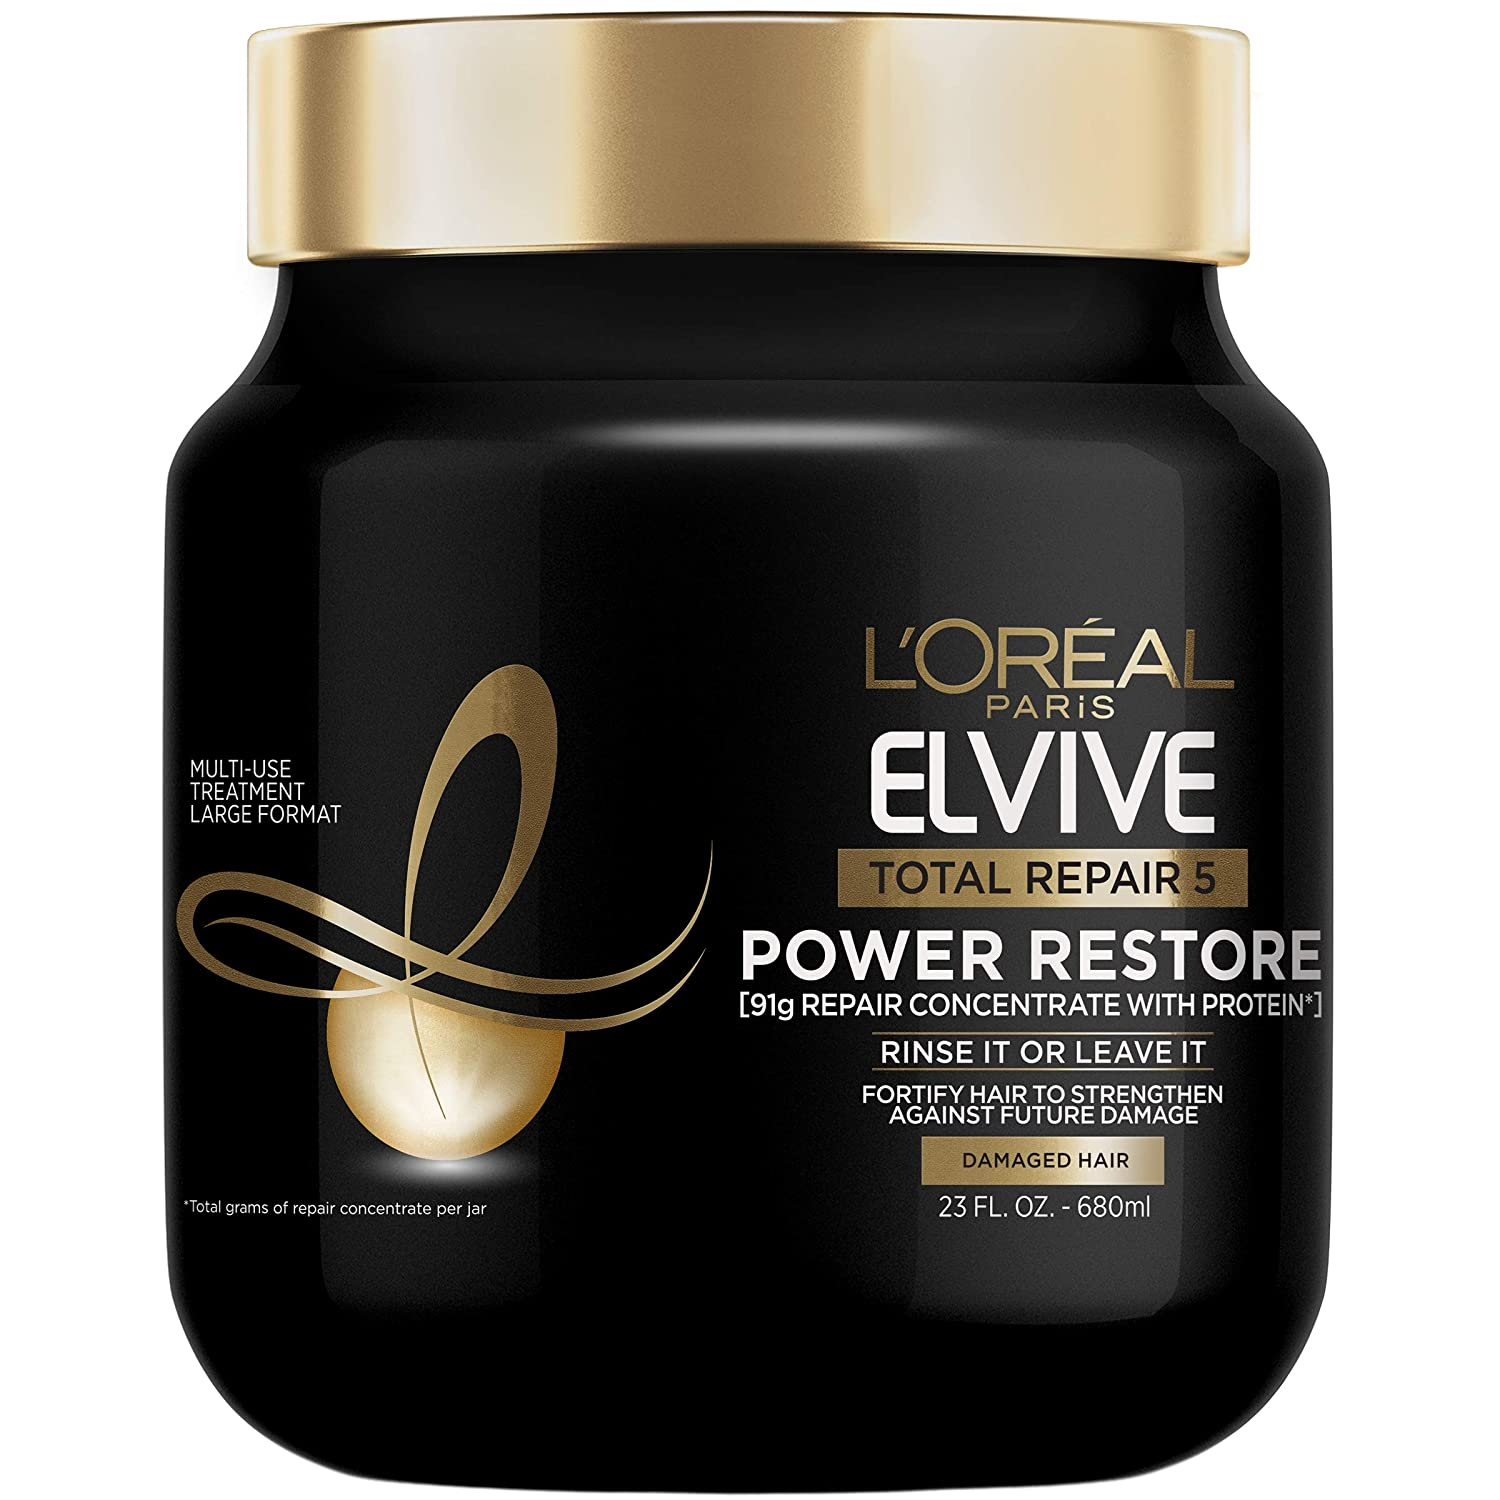 Loreal Paris Elvive Power Restore for thicker hair